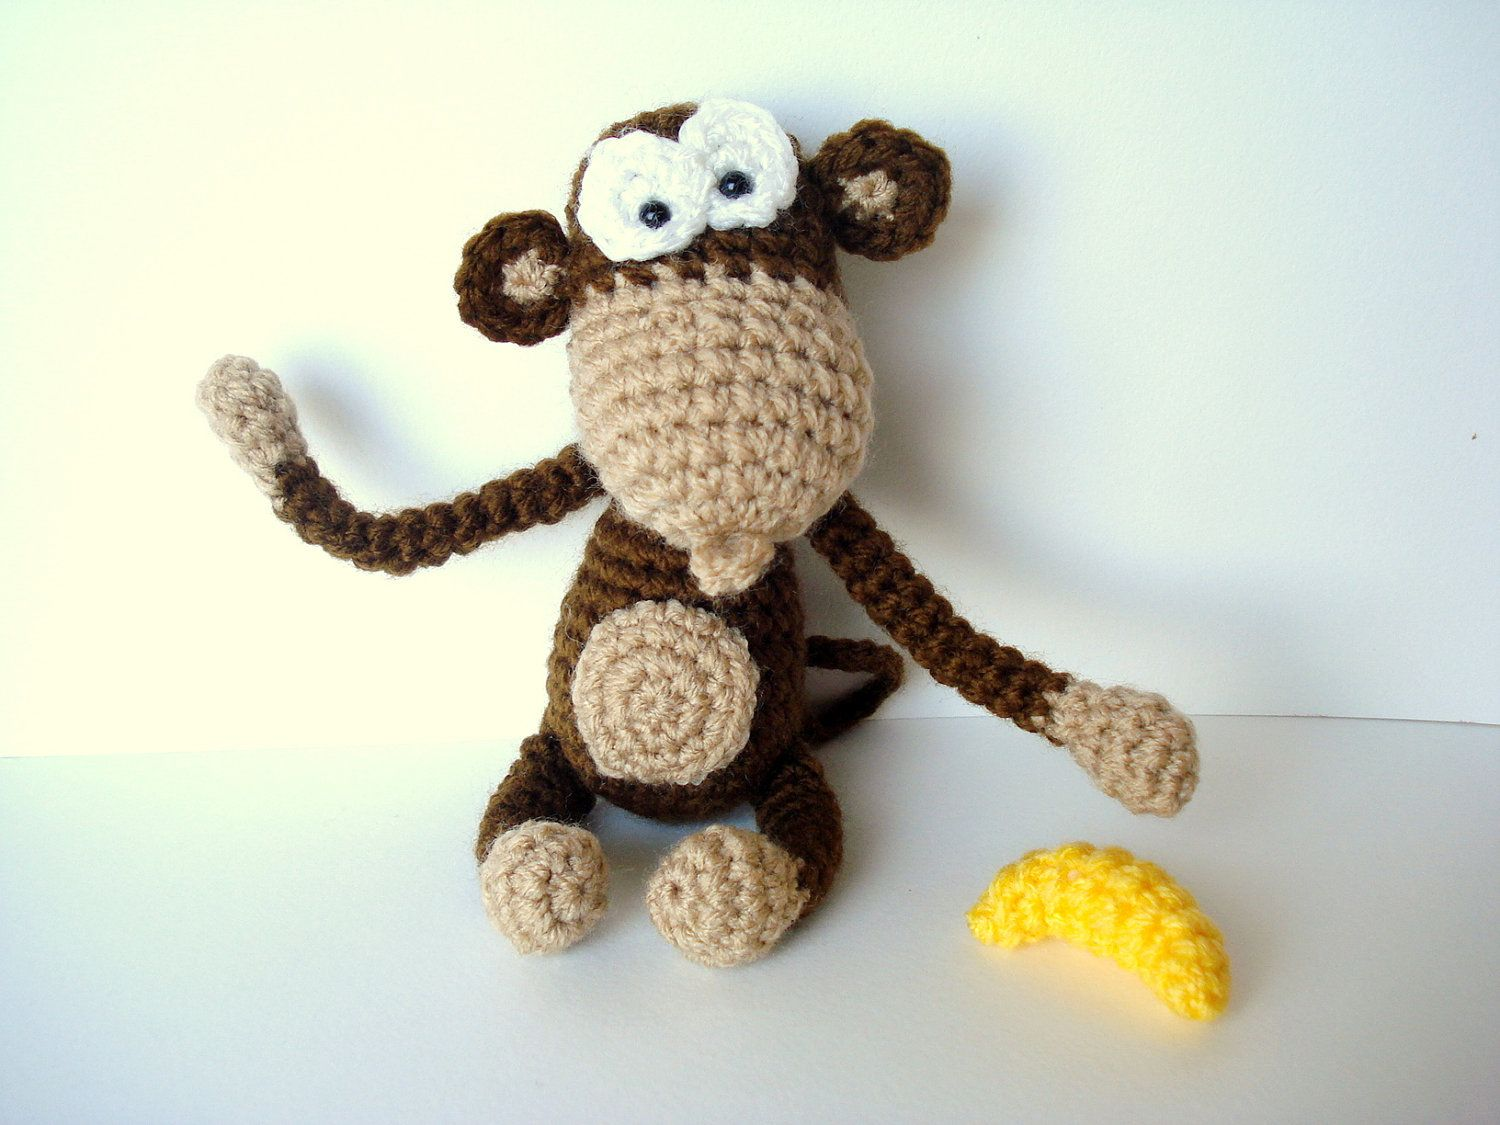 Amigurumi Monkey Patterns : Pattern amigurumi pattern amigurumi monkey pattern crocheted